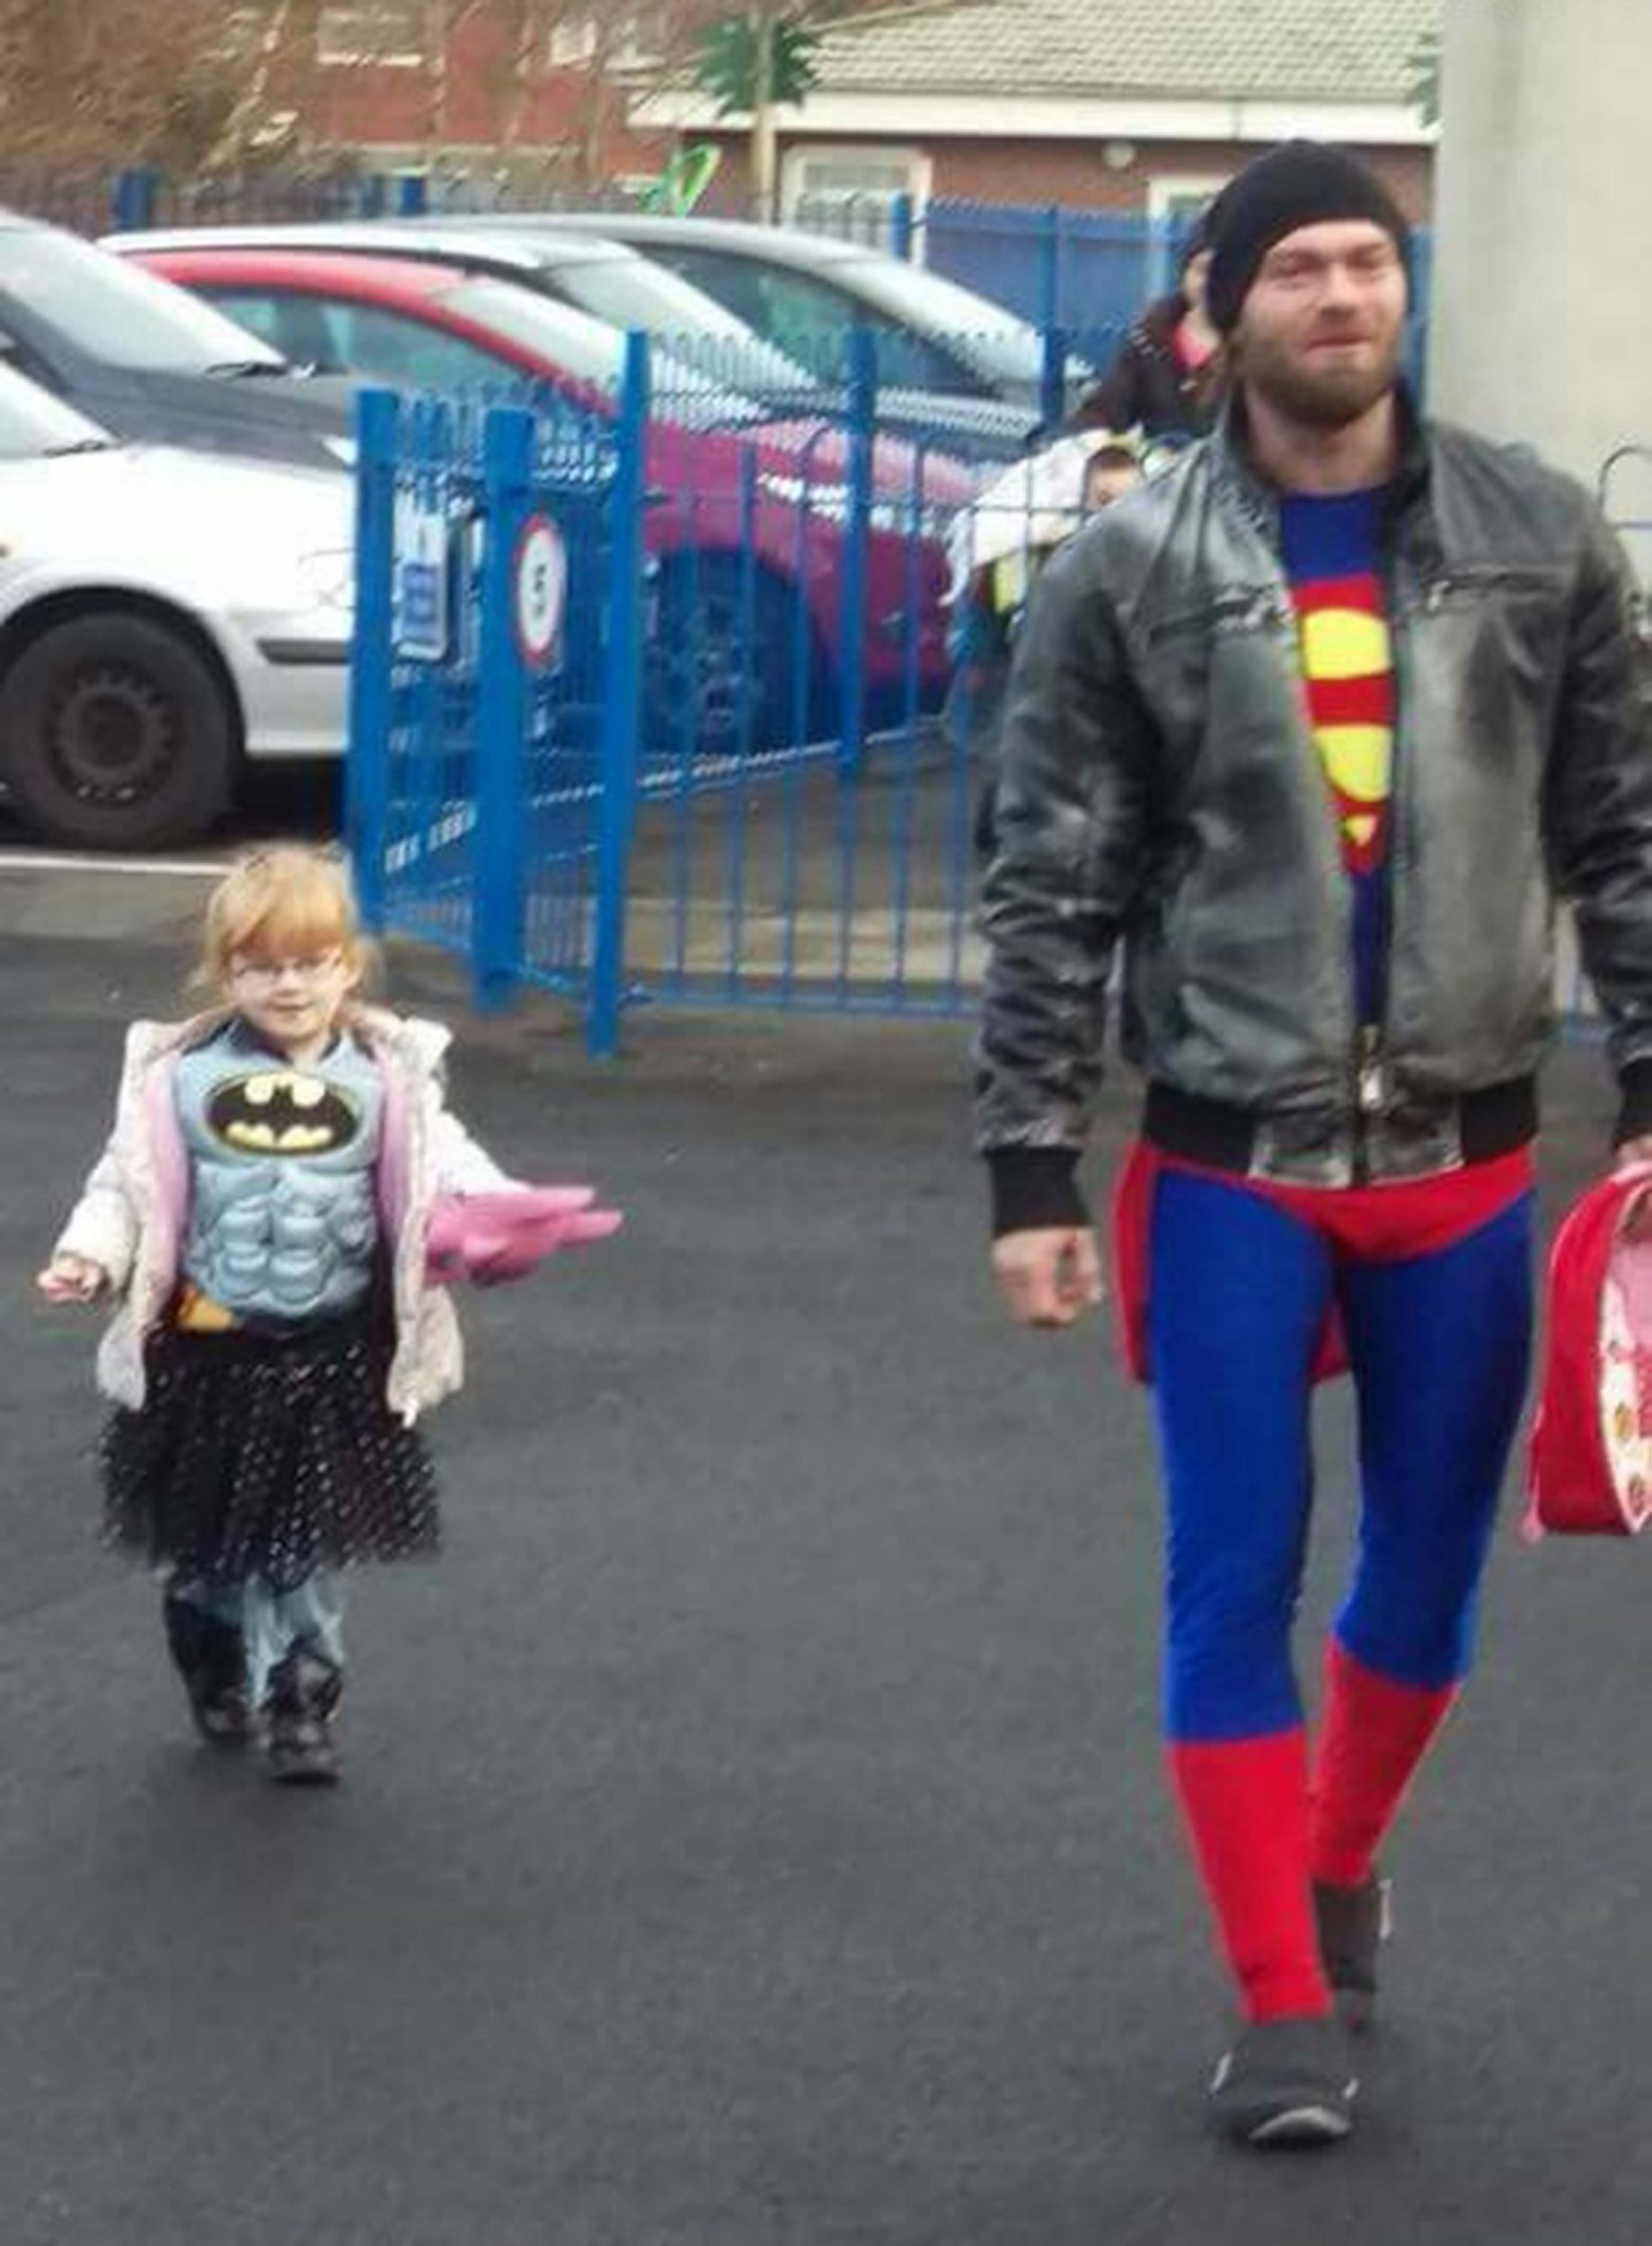 PIC FROM MERCURY PRESS (PICTURED: Danny Arnold, 29, and his daughter Phoebe, 3, dressed as superheroes) A tot who refused to go to school dressed as Batman because it was a boy's costume is over the moon when her dad dresses as Superman to walk her to school. Danny Arnold, from St Helens, Merseyside, decided to dress up alongside his three-year-old daughter, Phoebe, after she refused to wear her Batman outfit to school in case people laughed at her. The 29-year-old claims his daughter loves Batman and had been working on her costume to wear to school for their Superhero day all week - but thought she might look silly because it's a 'boy's outfit'. In a bid to get his daughter to school, Danny decided he'd put on a Superman outfit to walk her to school in, and their photo has since gone viral with more than 900 shares. SEE MERCURY COPY